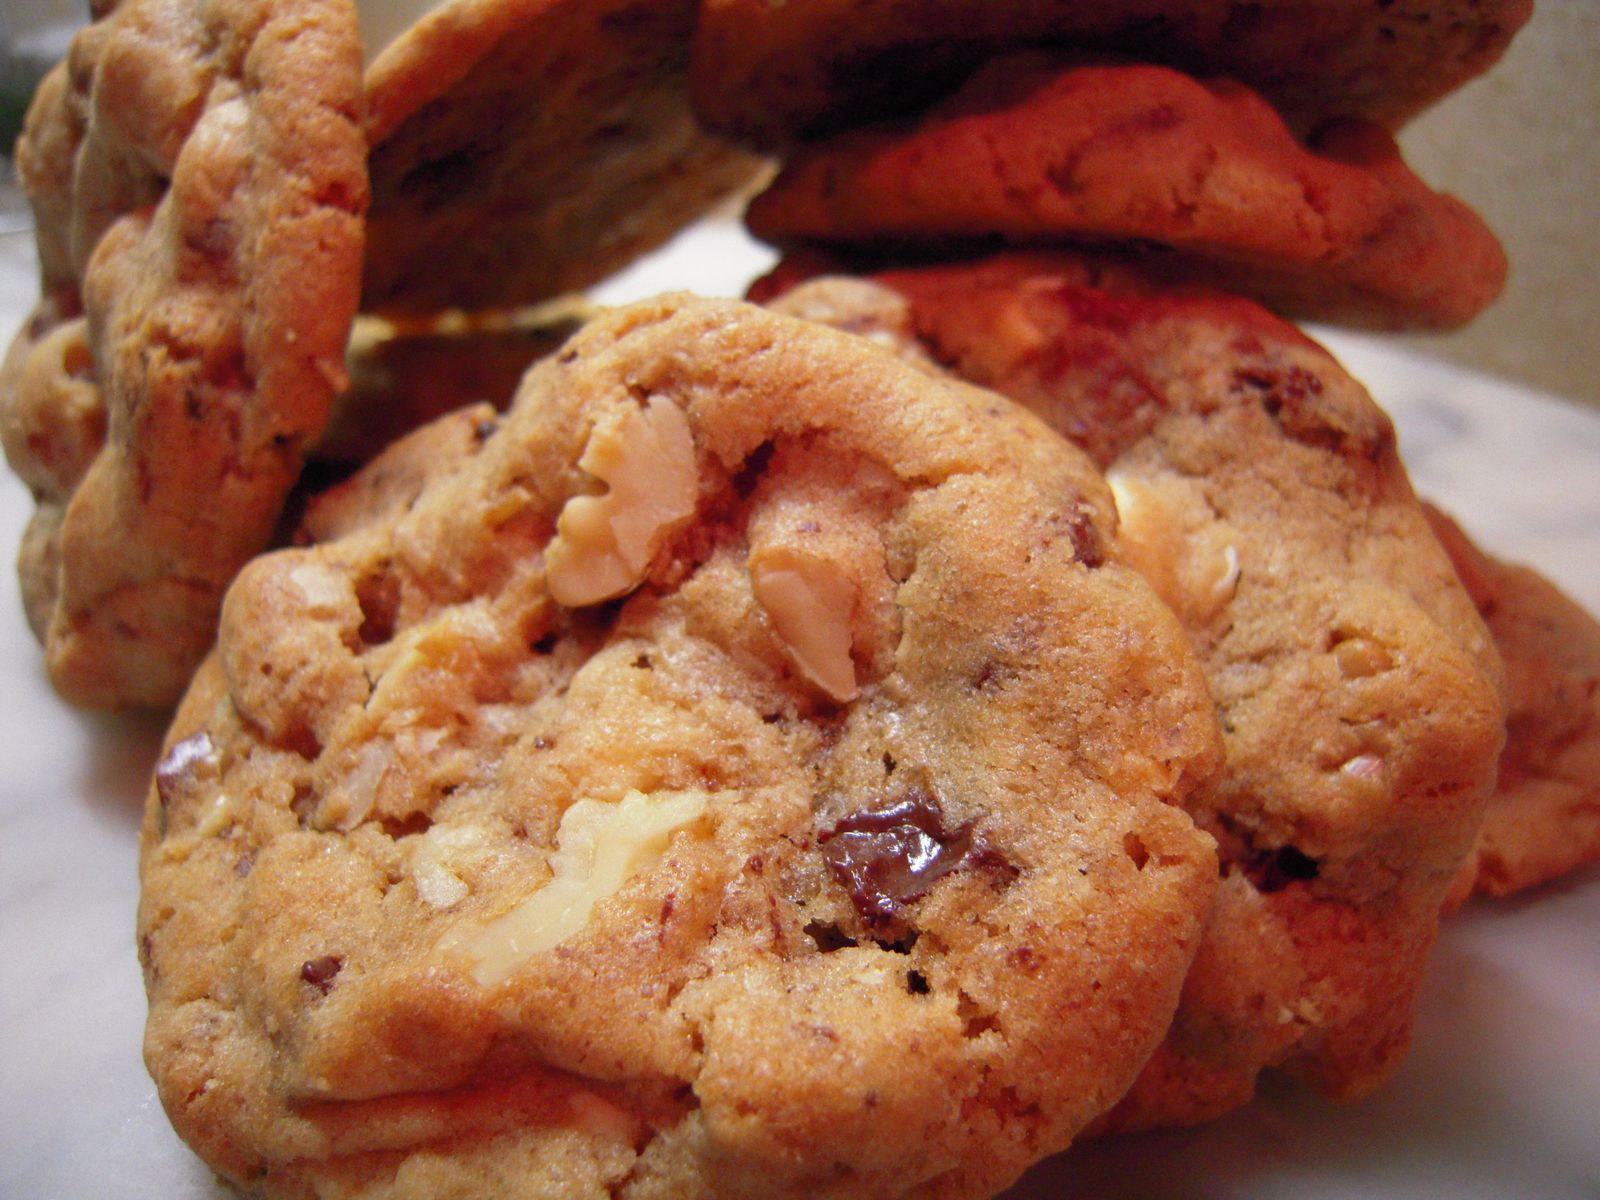 Chocolate chips cookies - Recette américaine